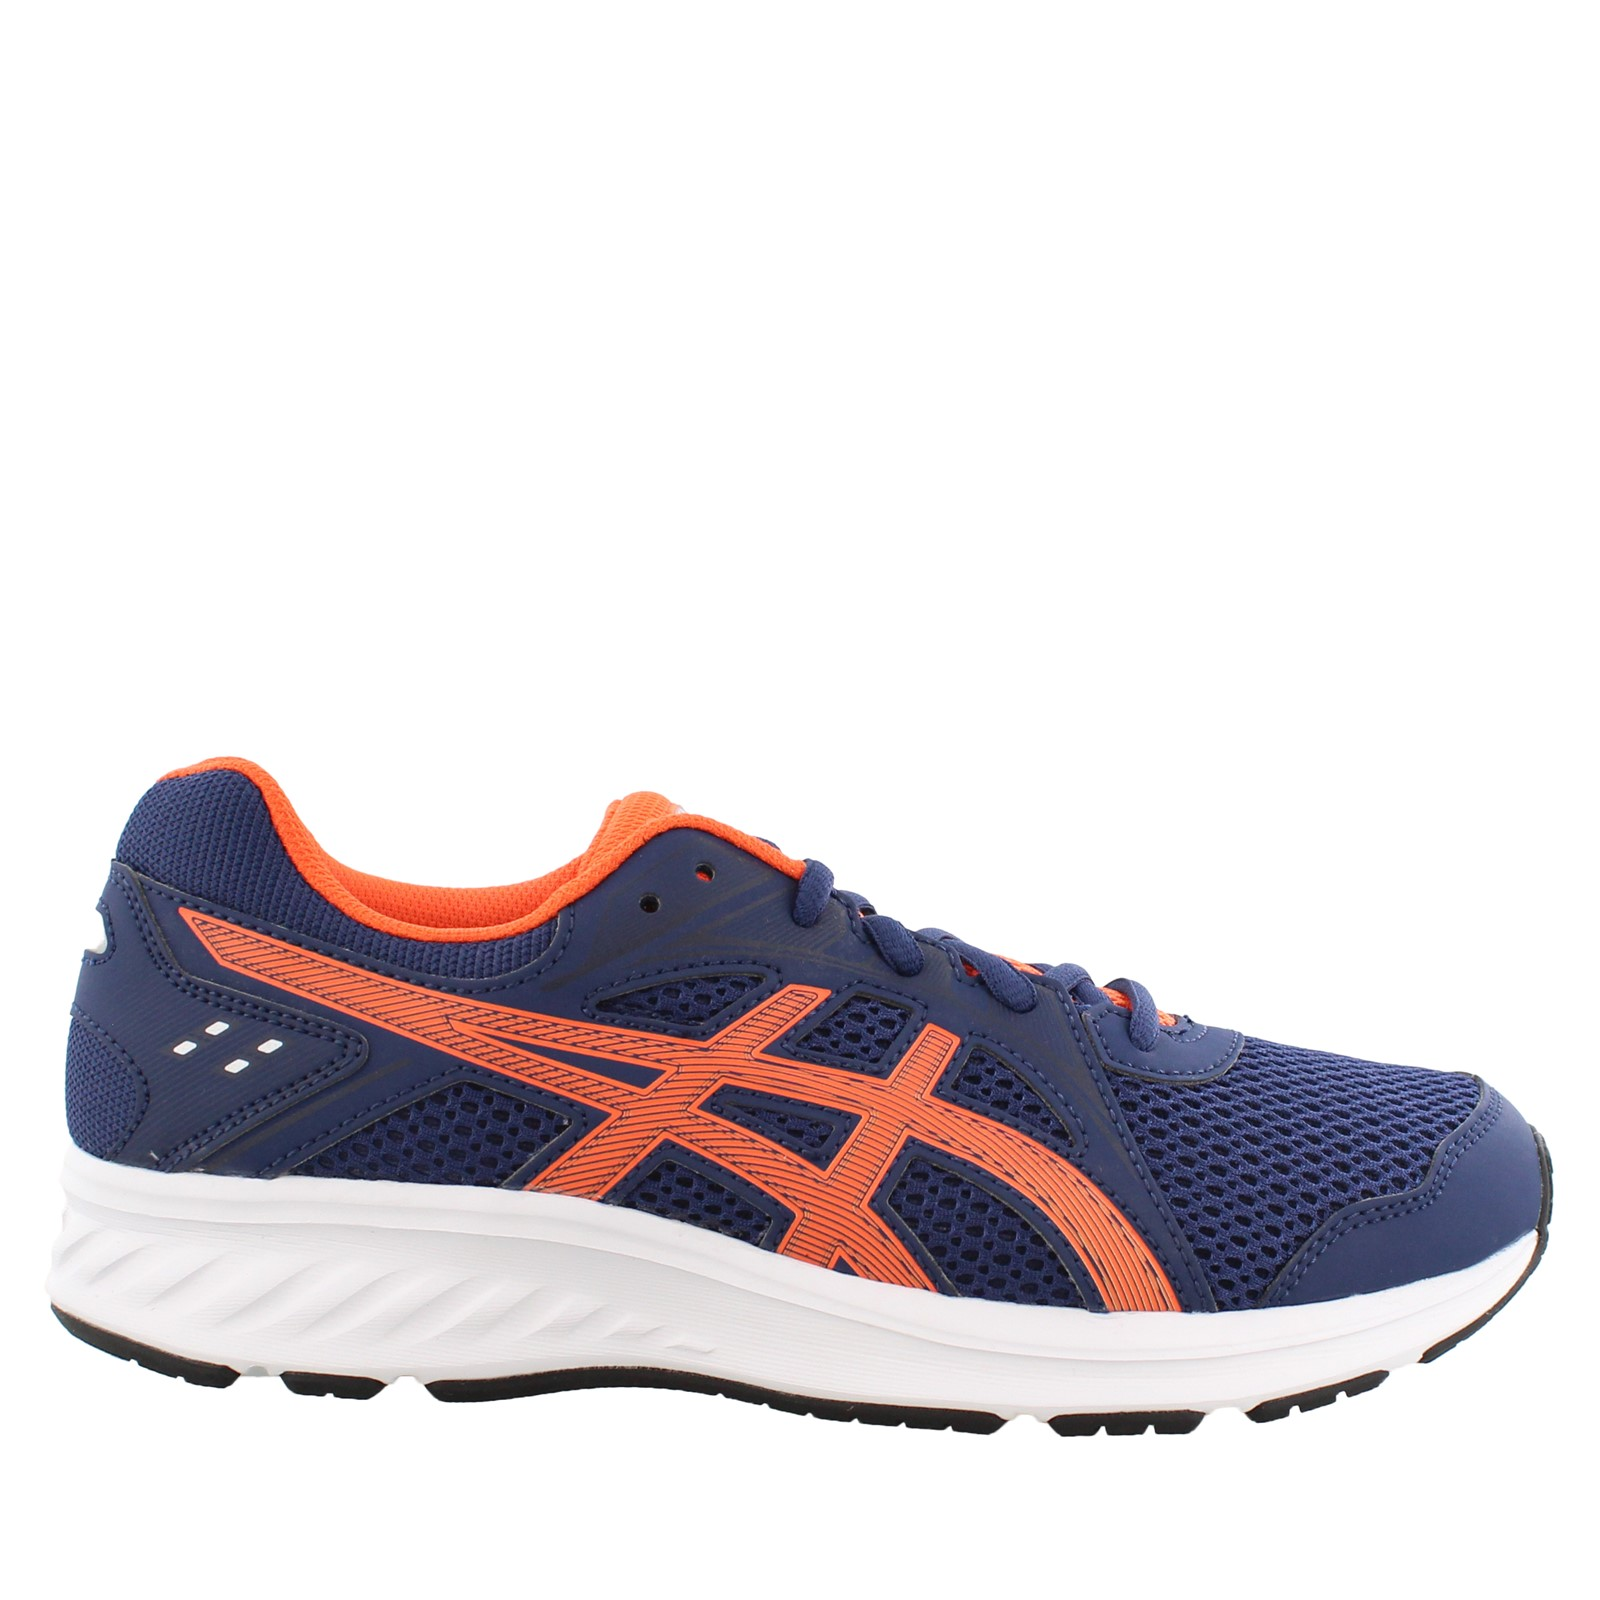 Boy's Asics, Jolt 2 Running Sneaker - Big Kid